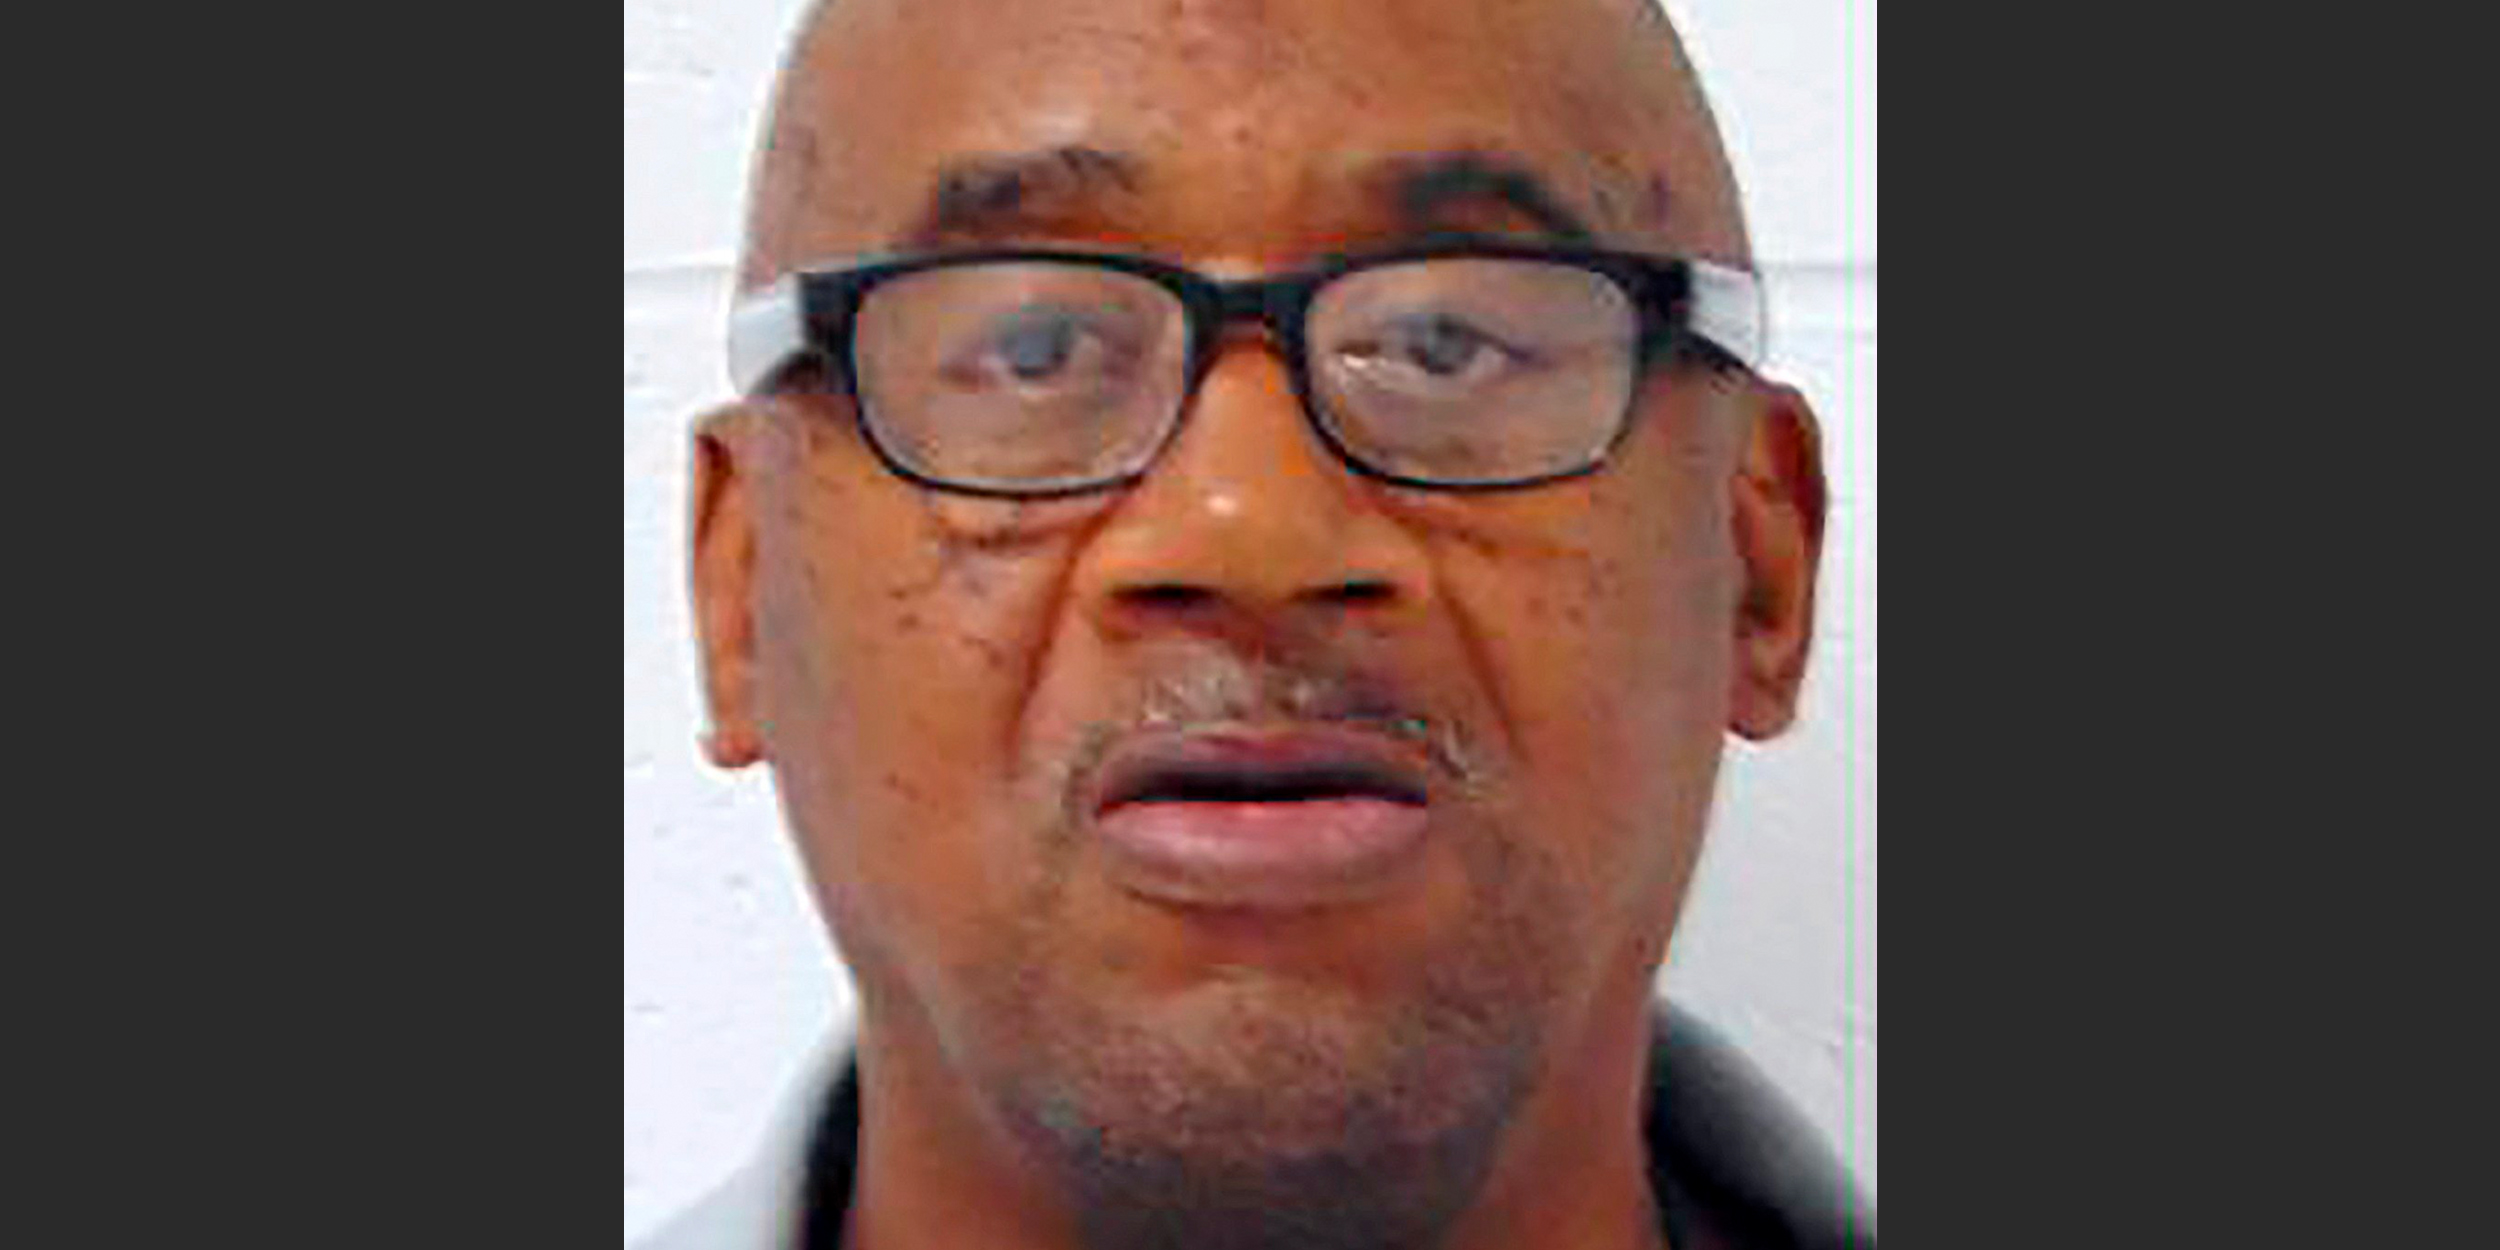 Ernest Johnson set to be executed in a few hours despite questions over his intellectual capacity